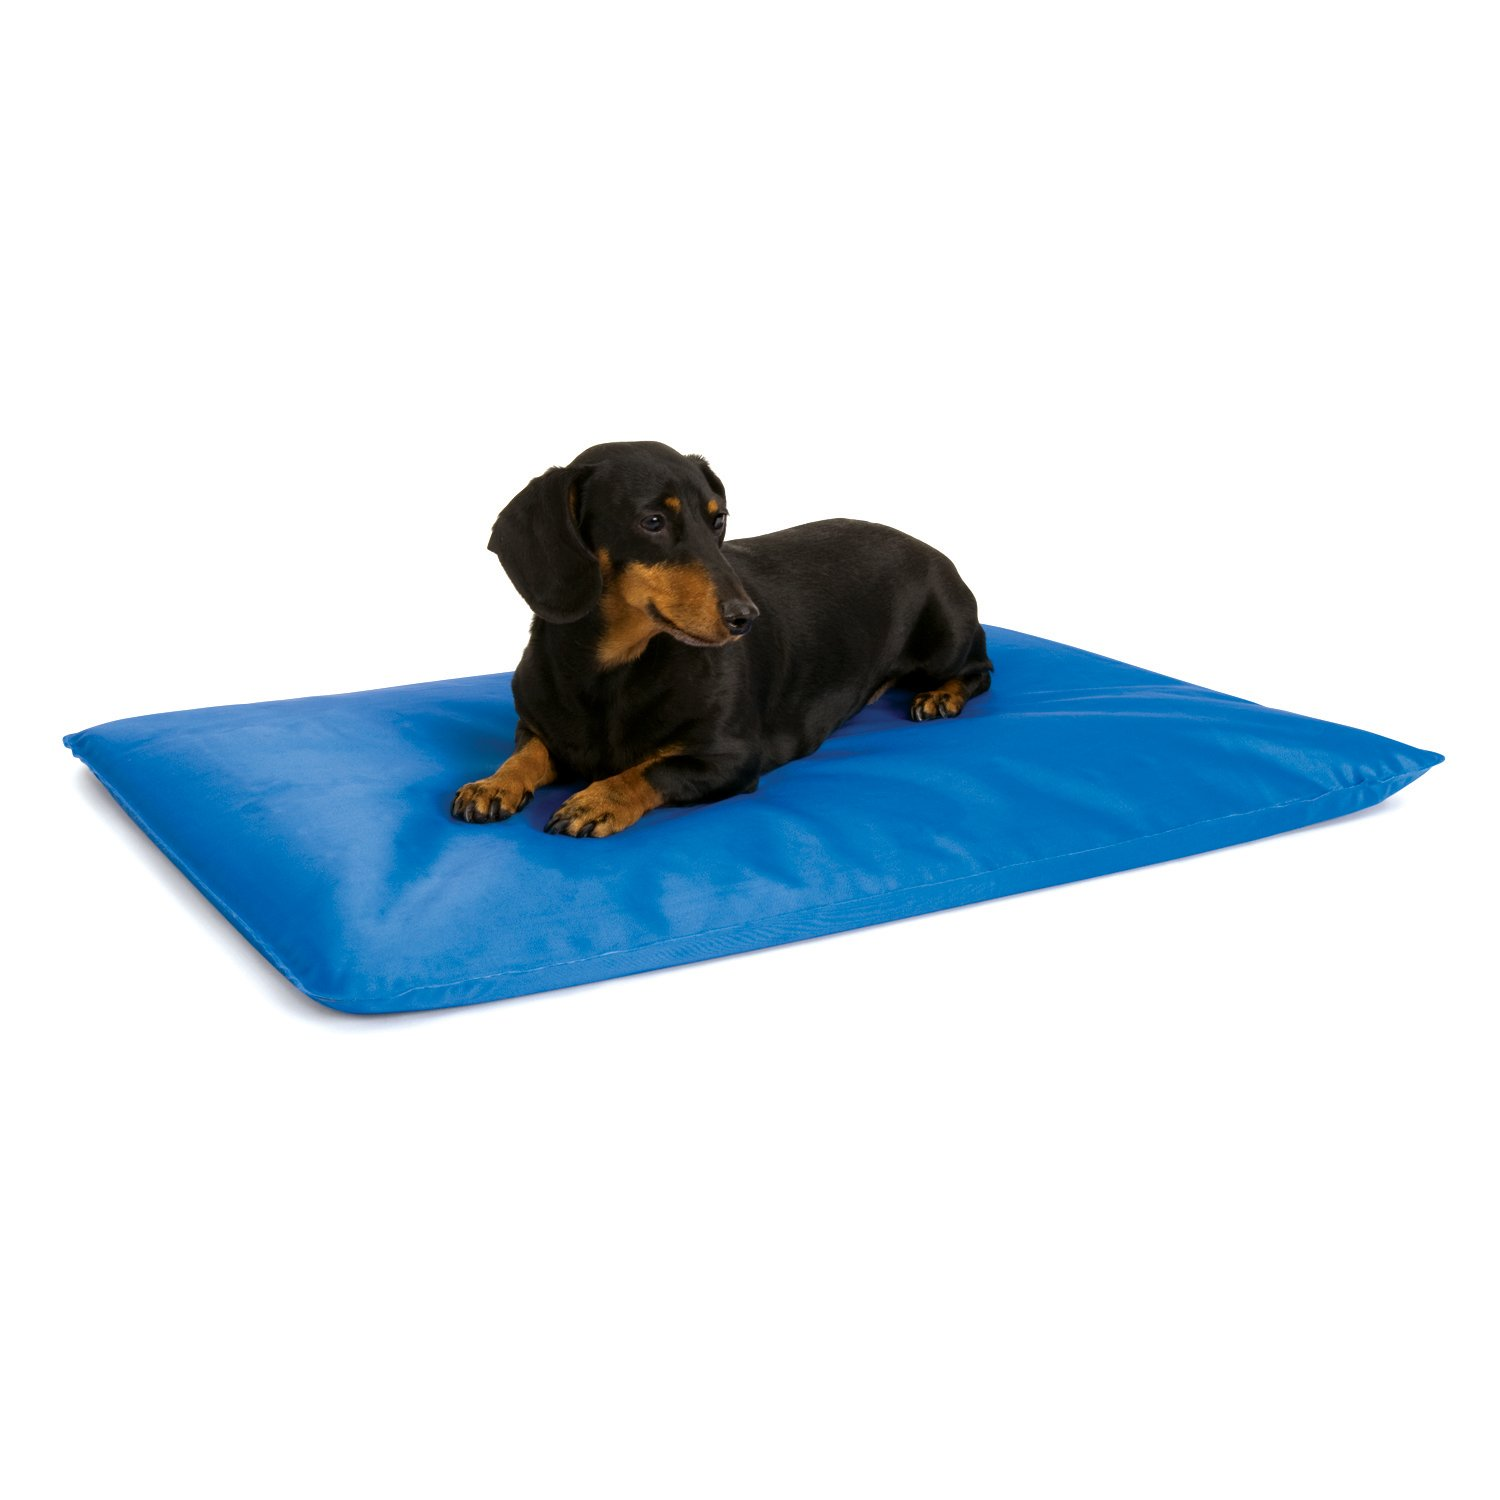 whalek mats have the dog cooling zuki for tests pet can travel dogs pad blog